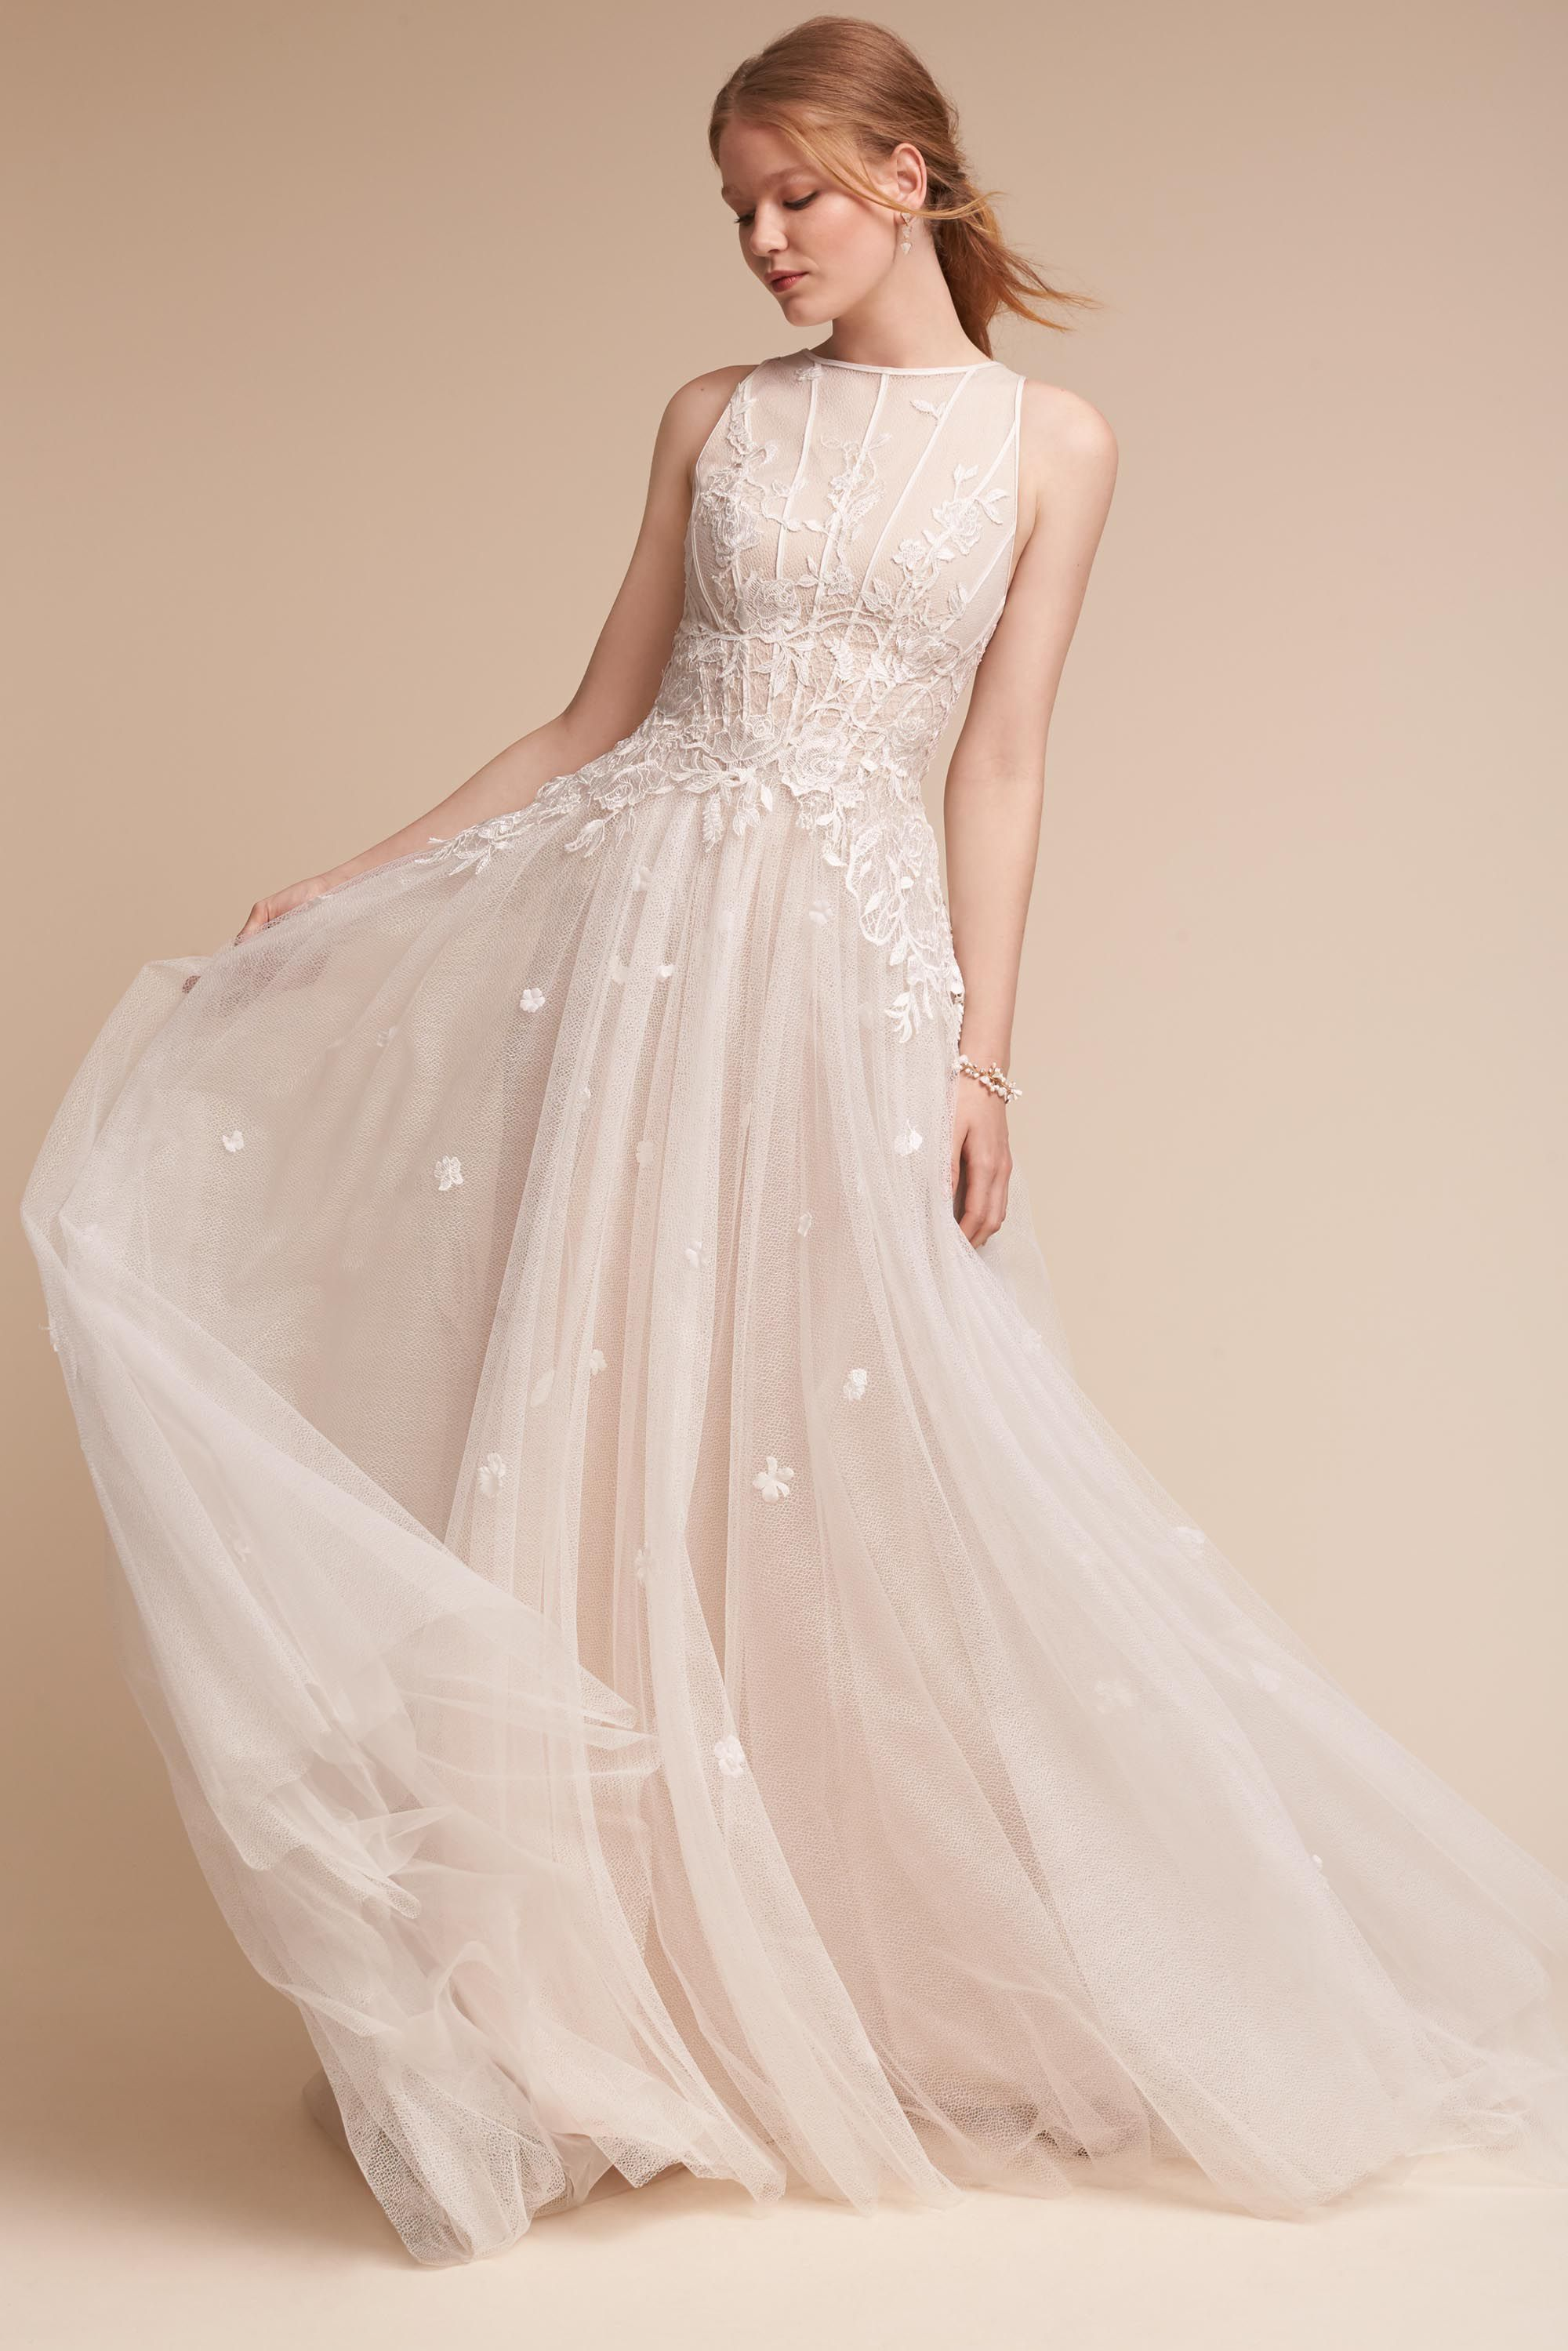 Lace Wedding Dresses Queensland : Where to buy bhldn wedding dresses in store